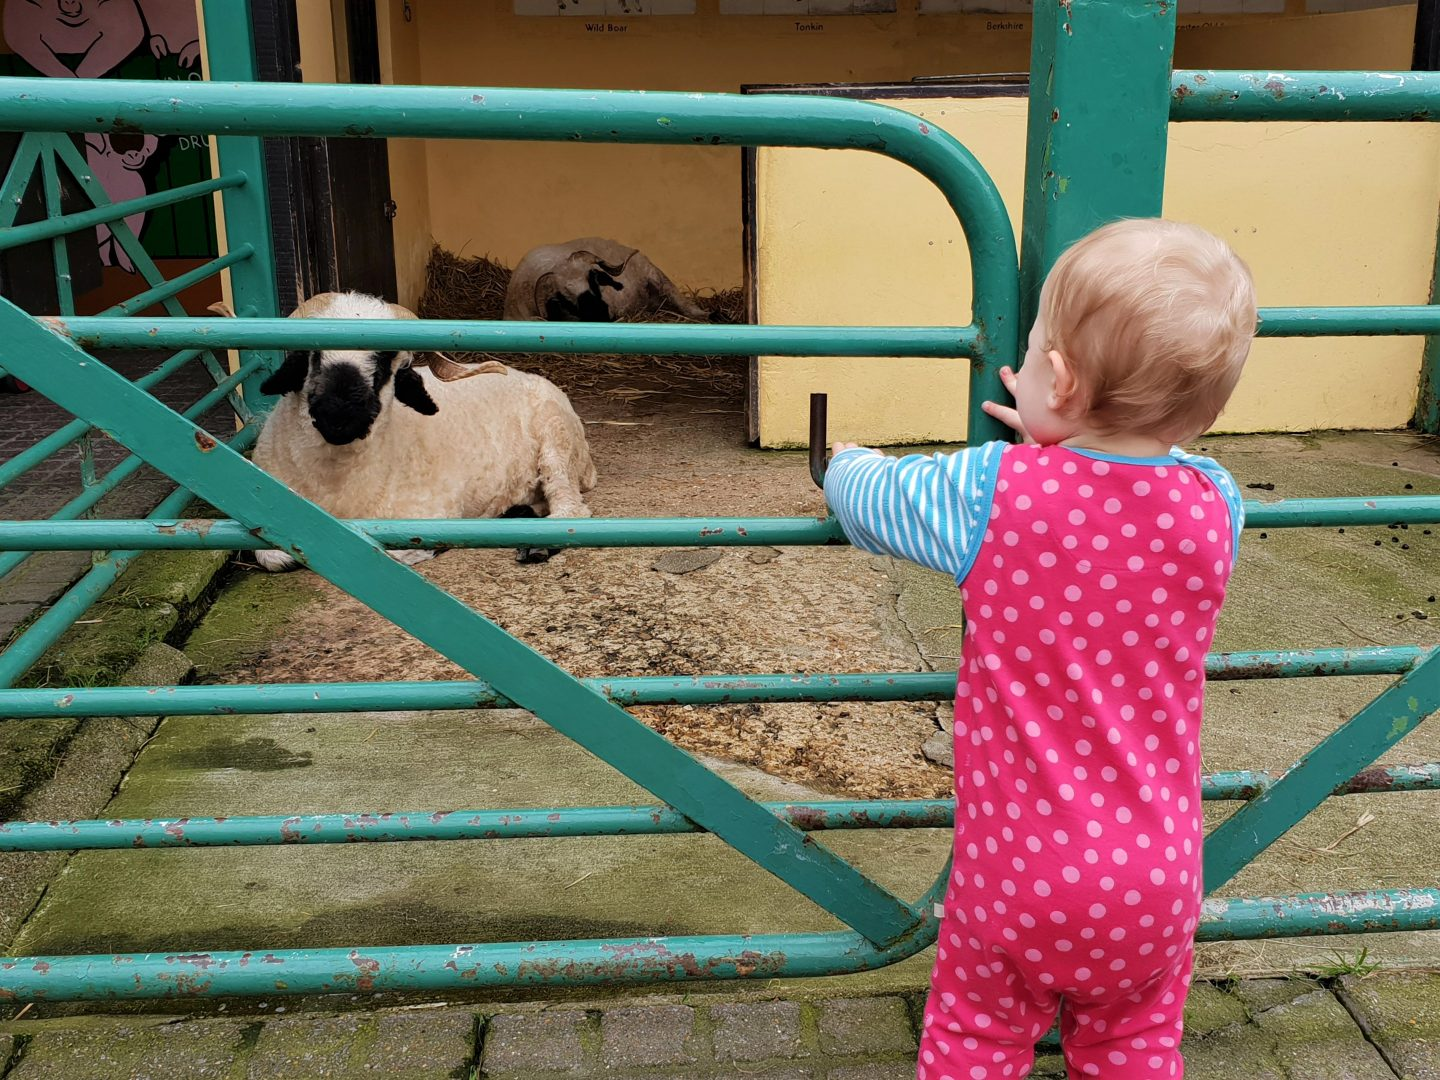 Toddler and sheep at Drusillas Park